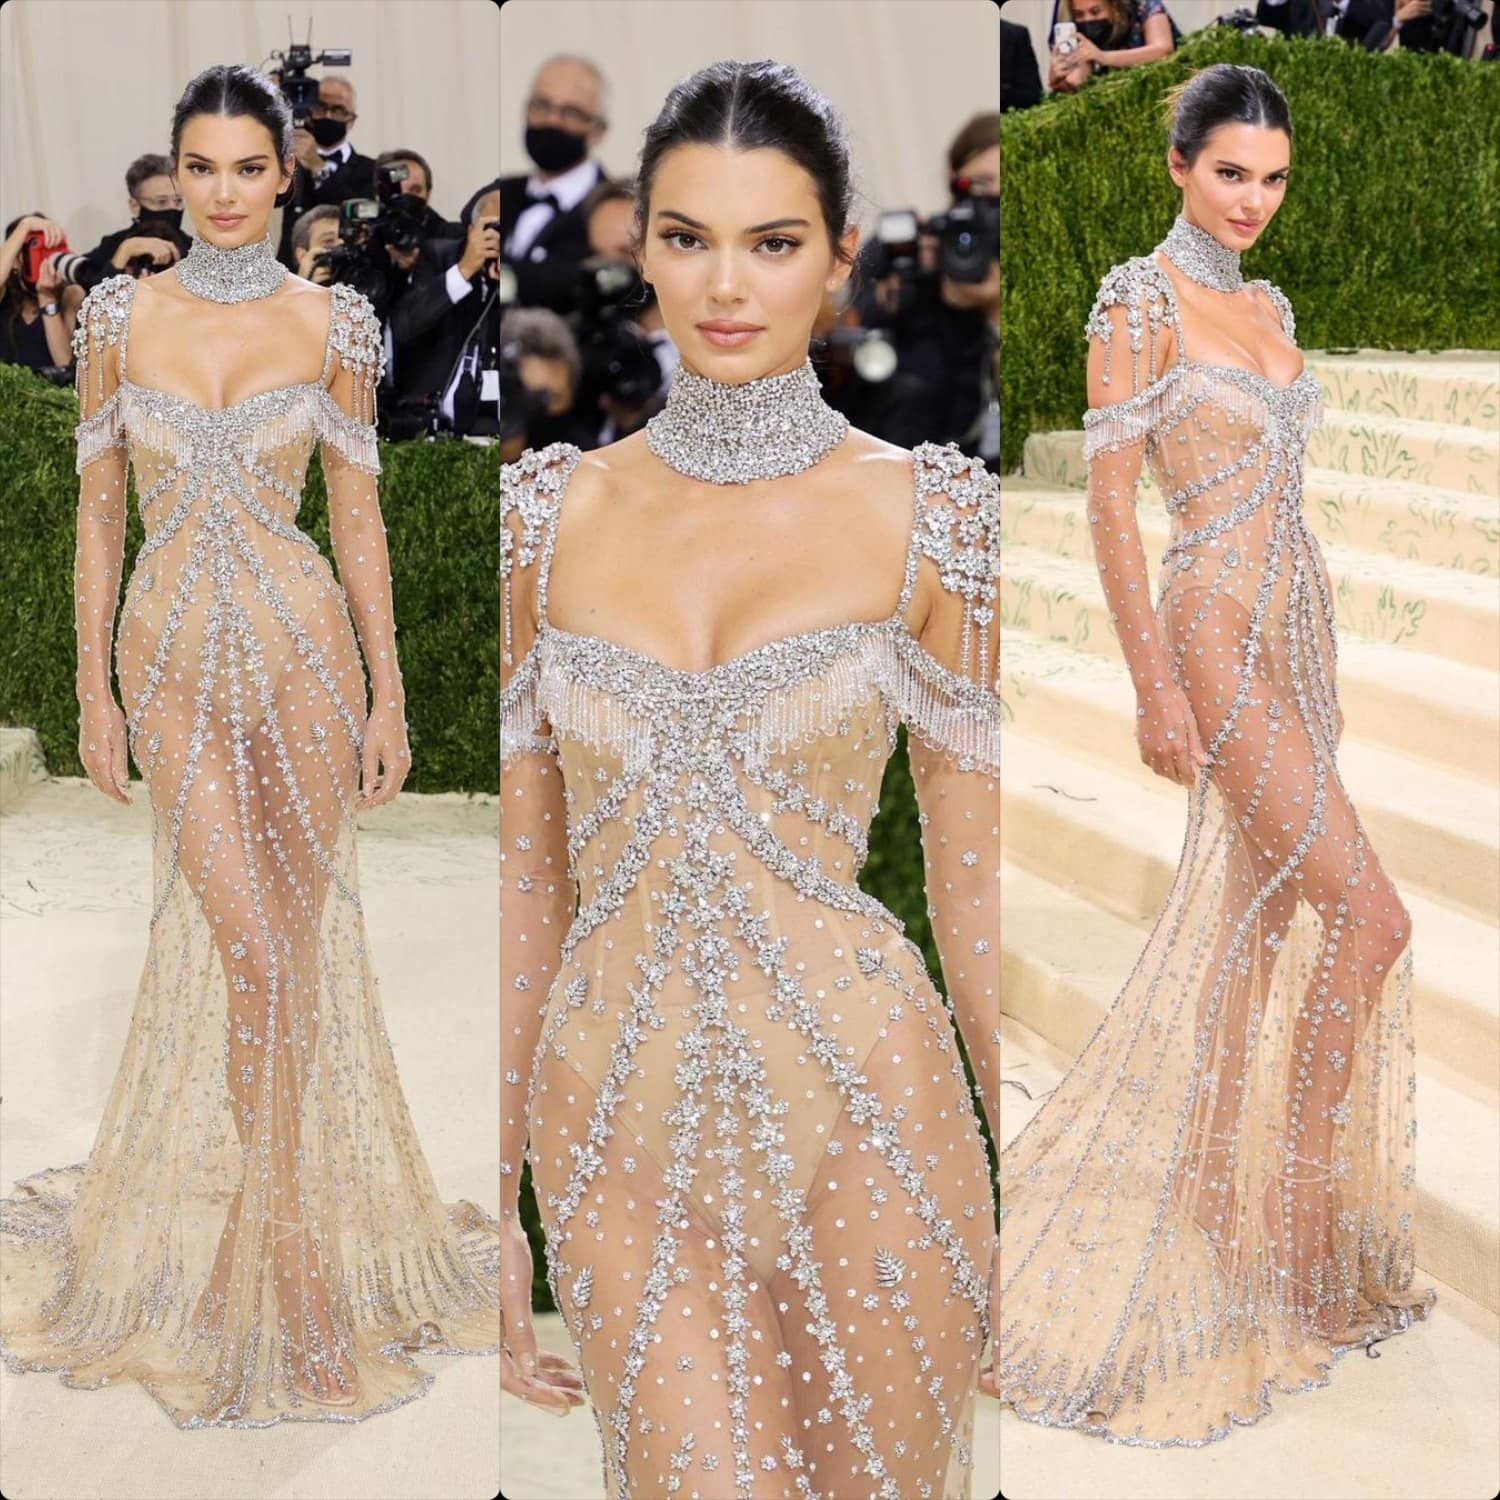 Kendall Jenner in Givenchy at Met Gala 2021 by RUNWAY MAGAZINE